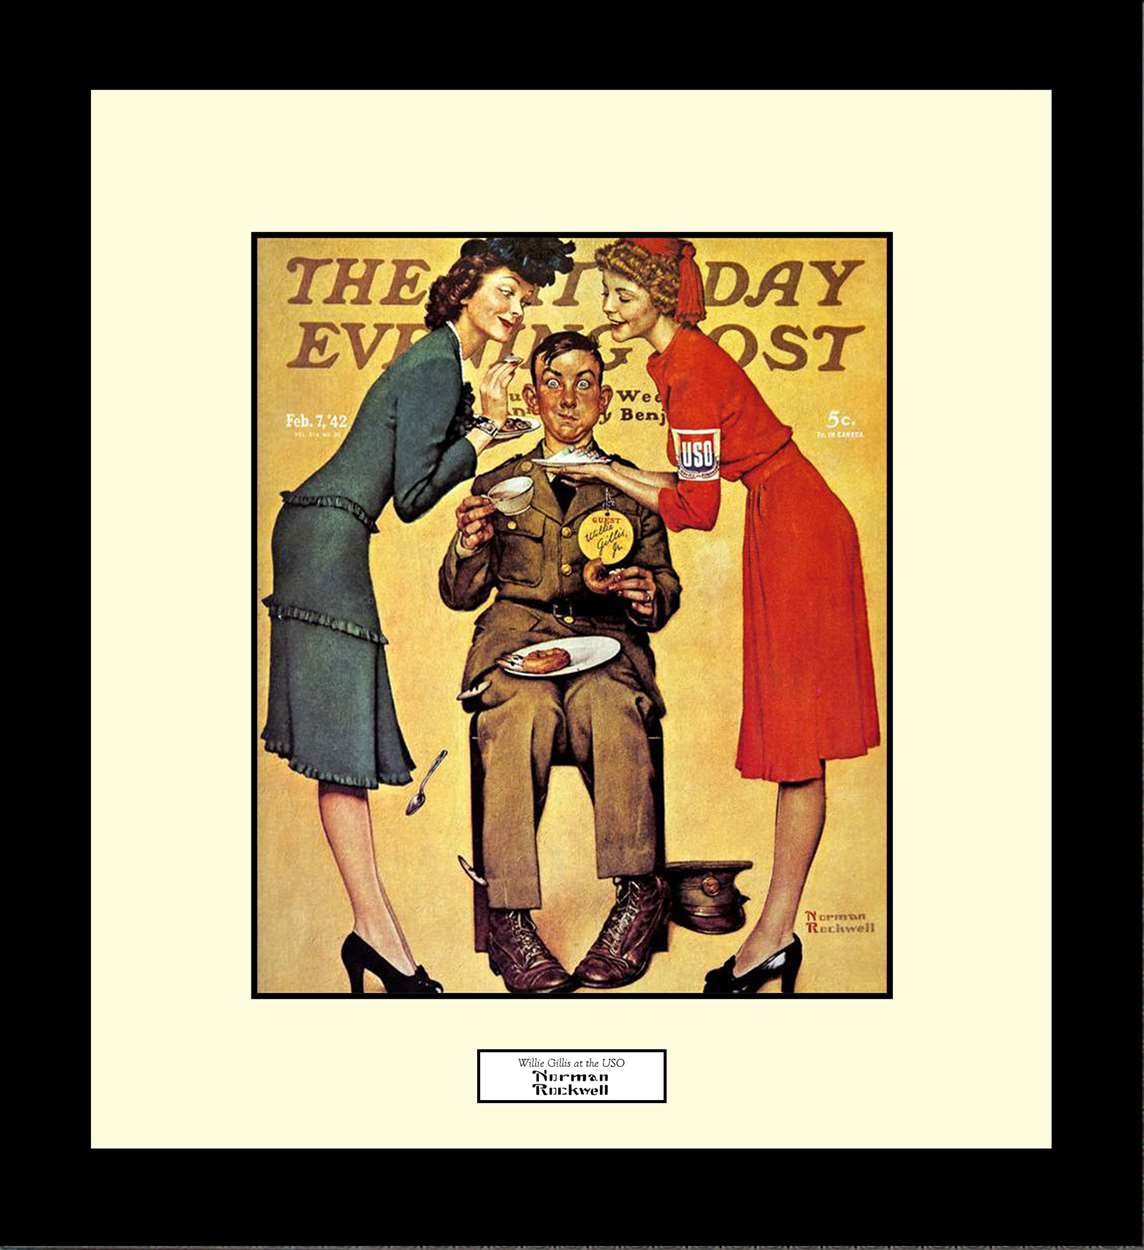 Willie Gillis at the USO, Norman Rockwell, 16x18